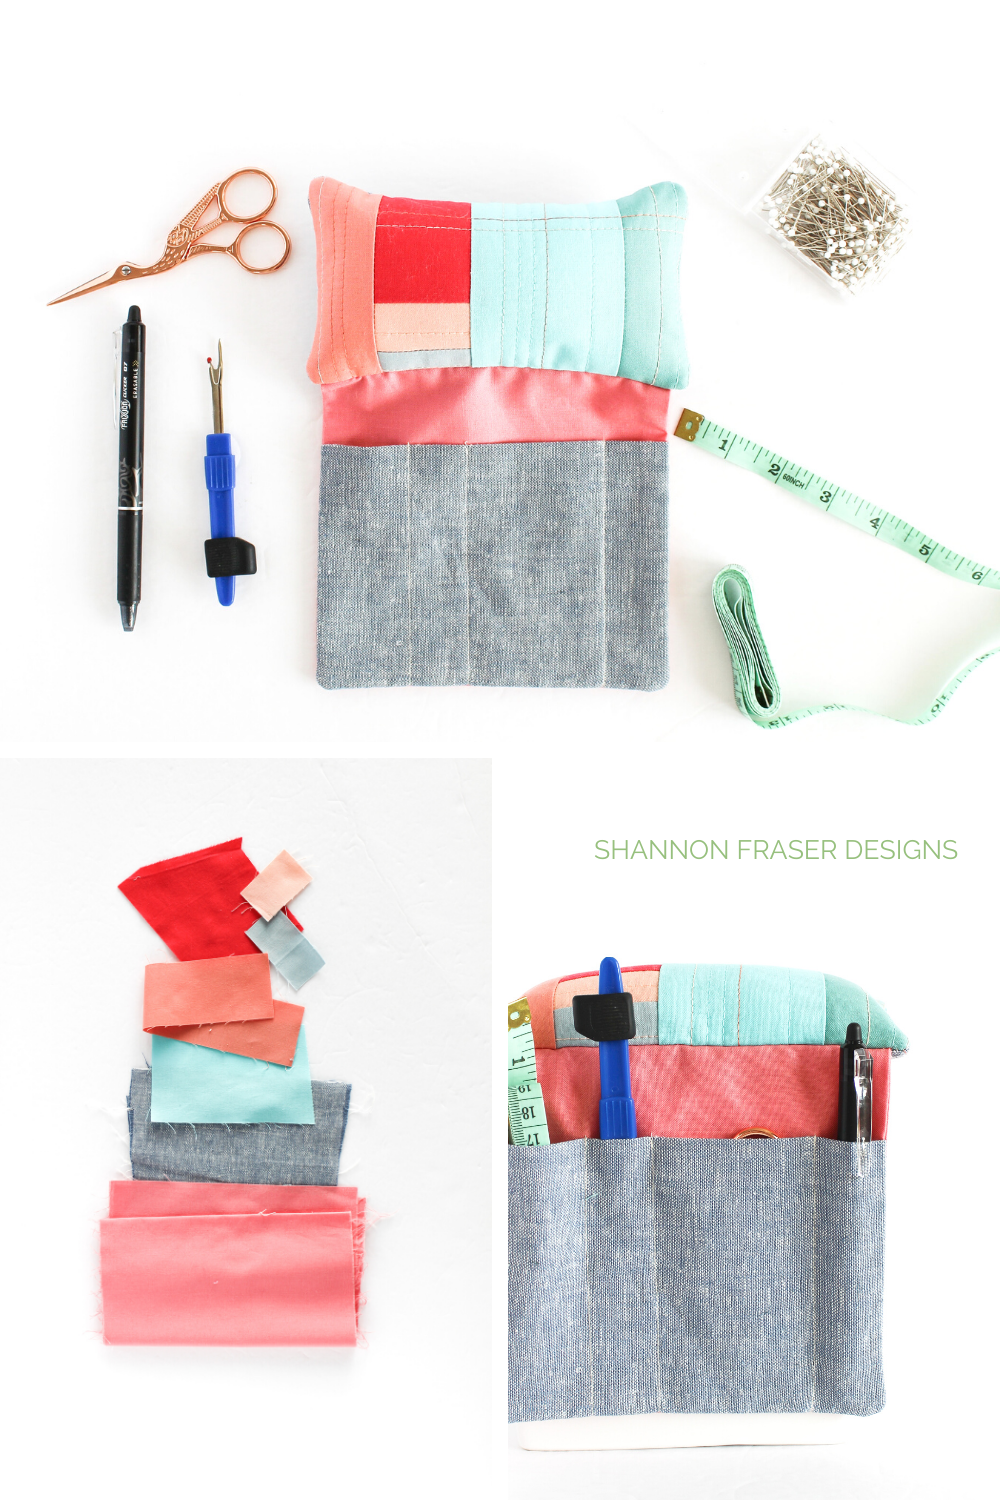 Kona Solids in bright corals and blues with linen scraps and then turned into a Sit 'n Sew pincushion | Sit 'n Sew Pincushion Pattern | Shannon Fraser Designs